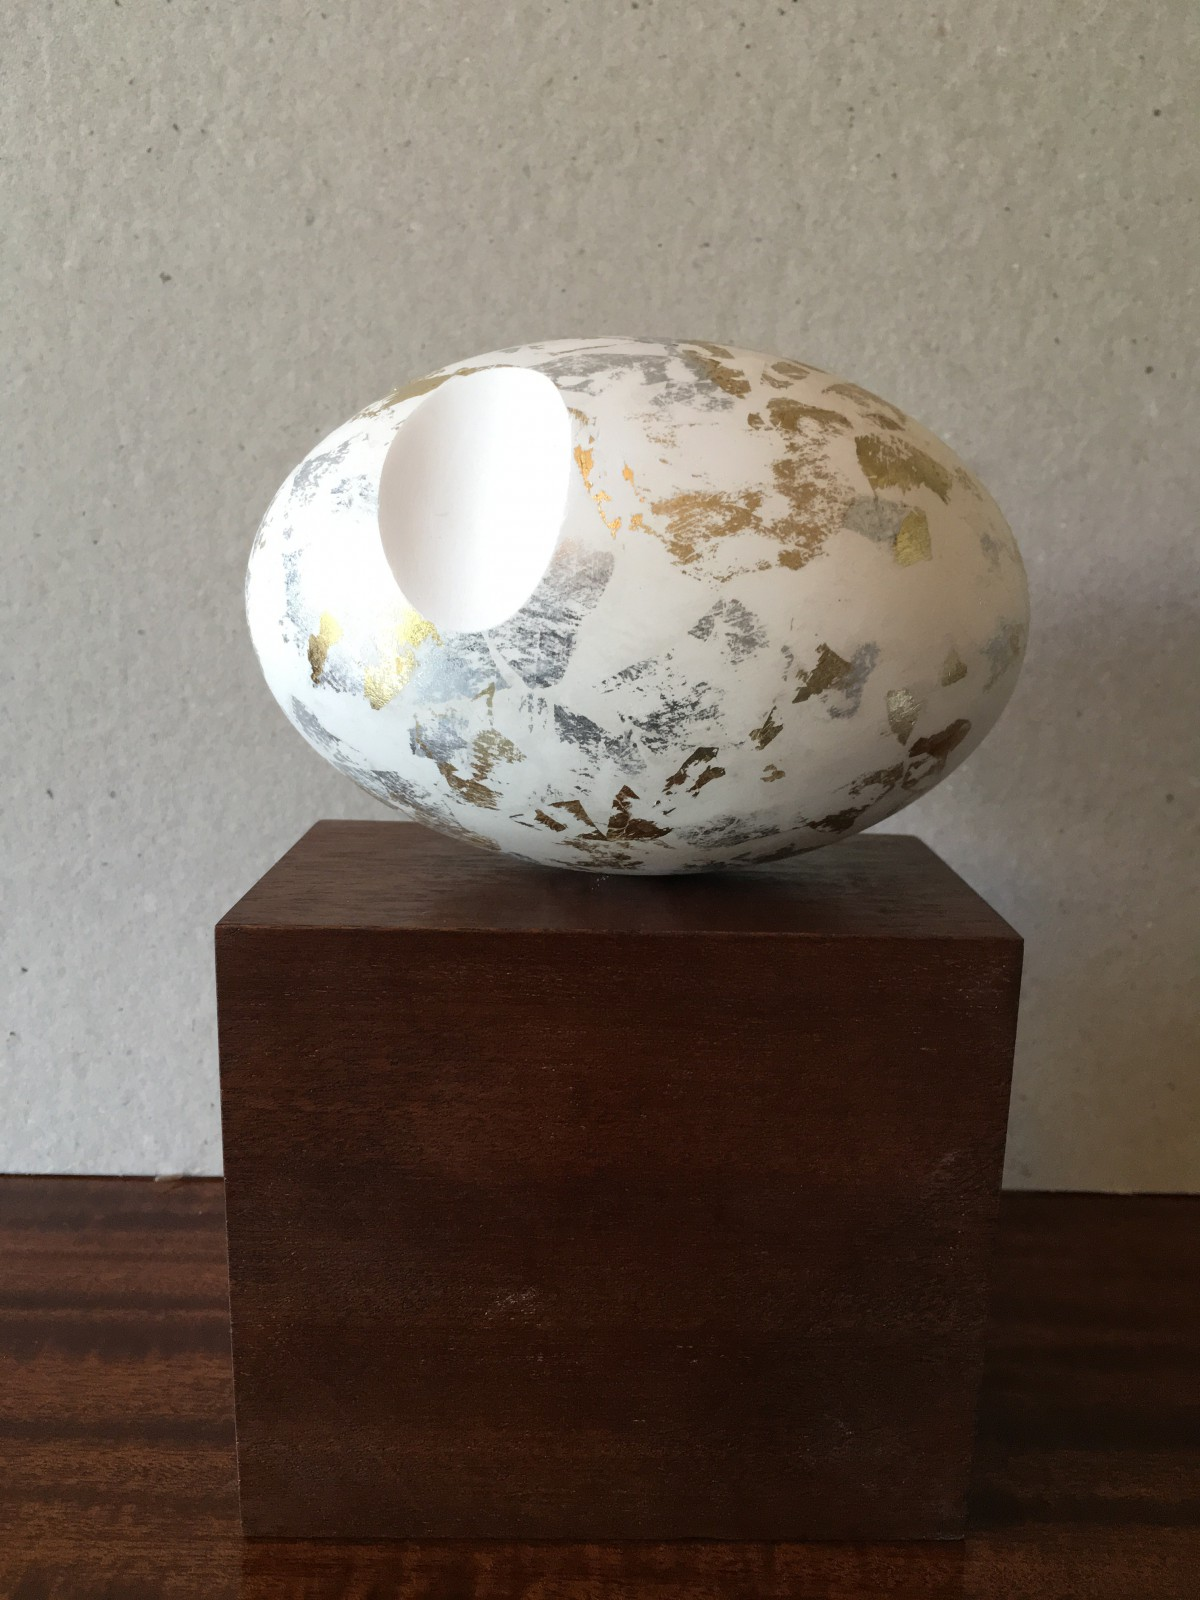 David Sprakes, Worn Ovoid, Herculite plaster maquette with gold and silver leaf, 12 x 8cm, £100